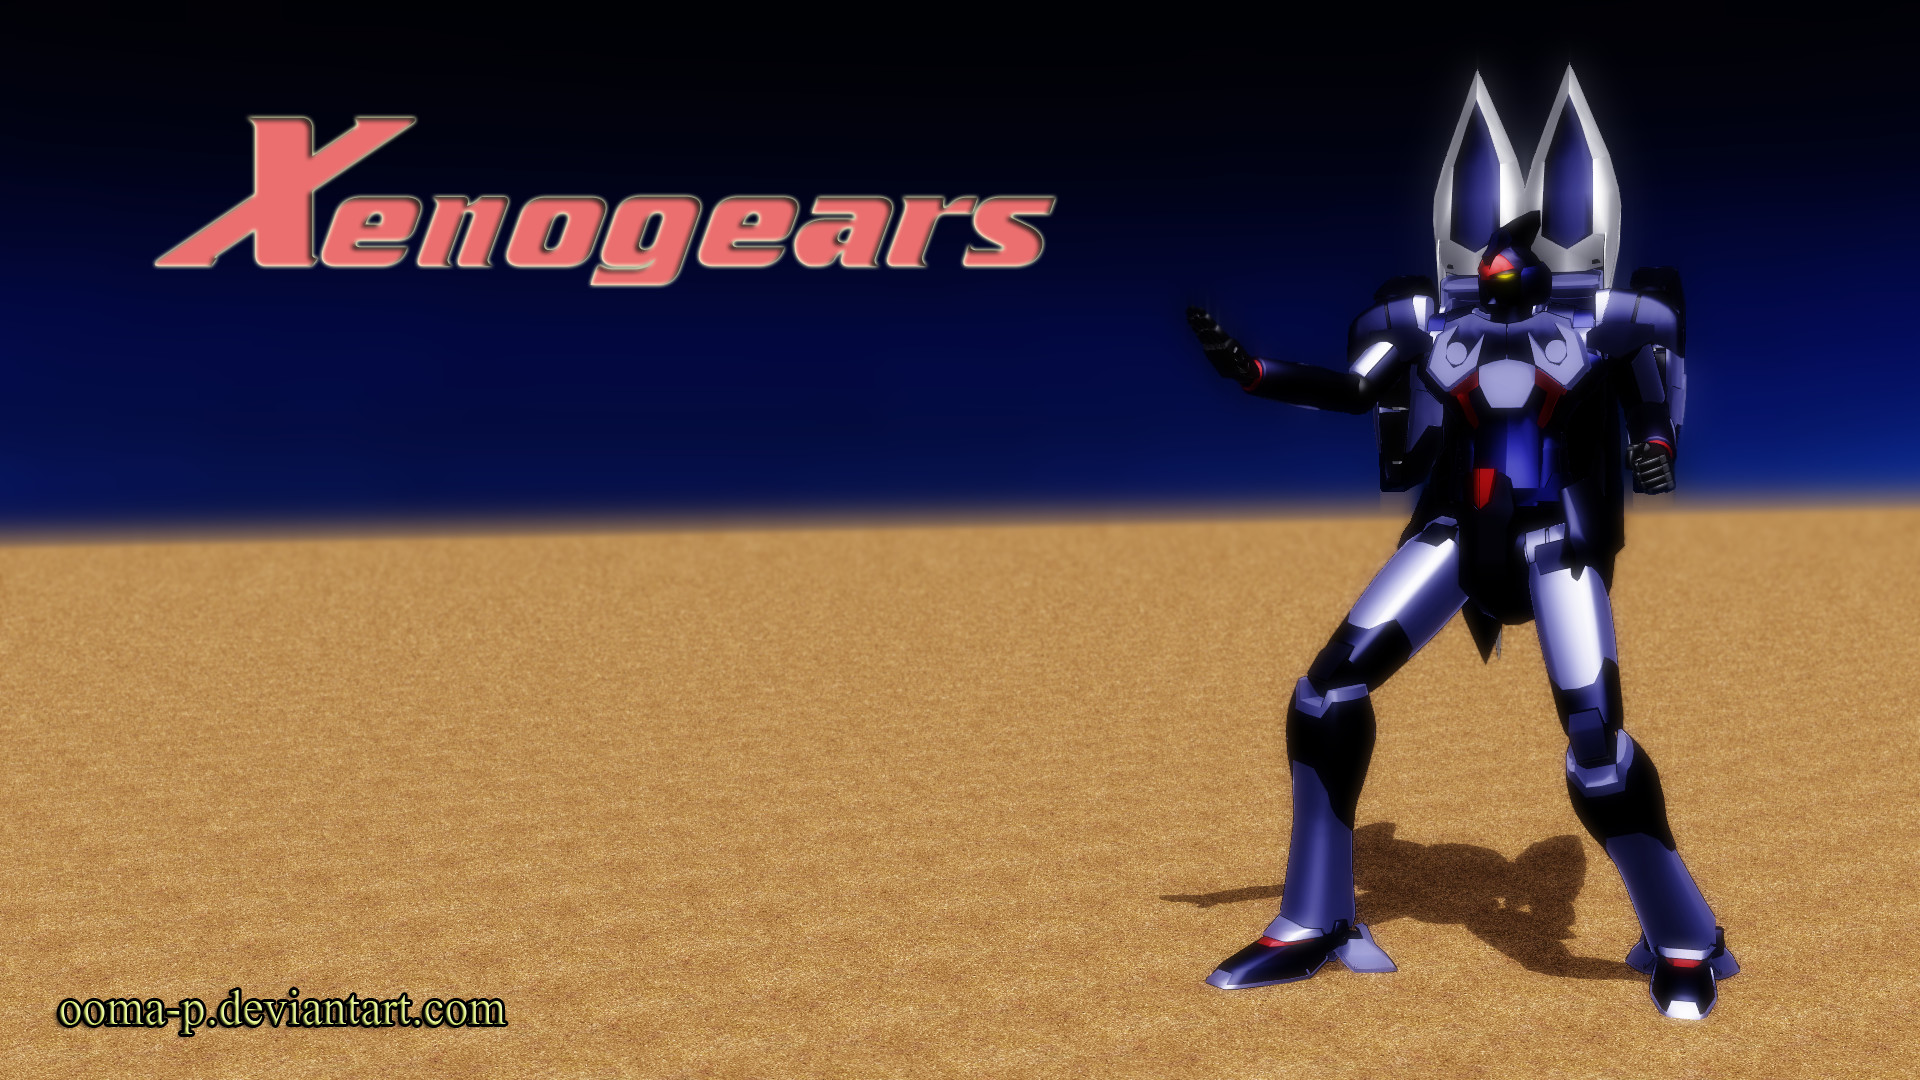 … Xenogears – Welltall by Ooma-p